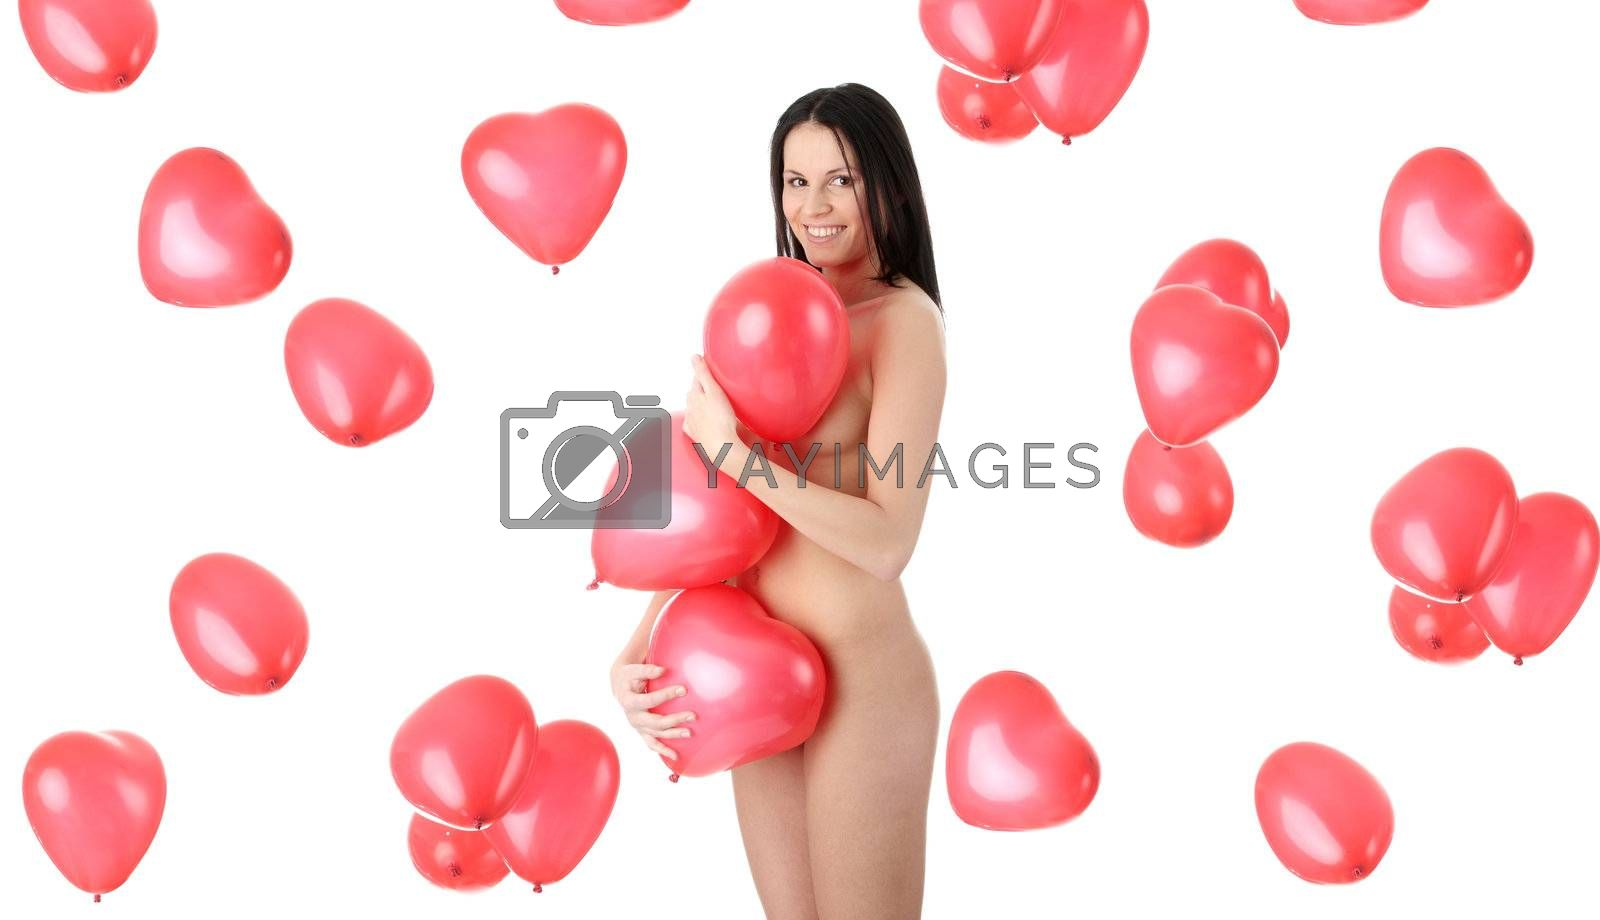 Beautiful nude girl with red heart balloon on a white background (love and valentines concept)